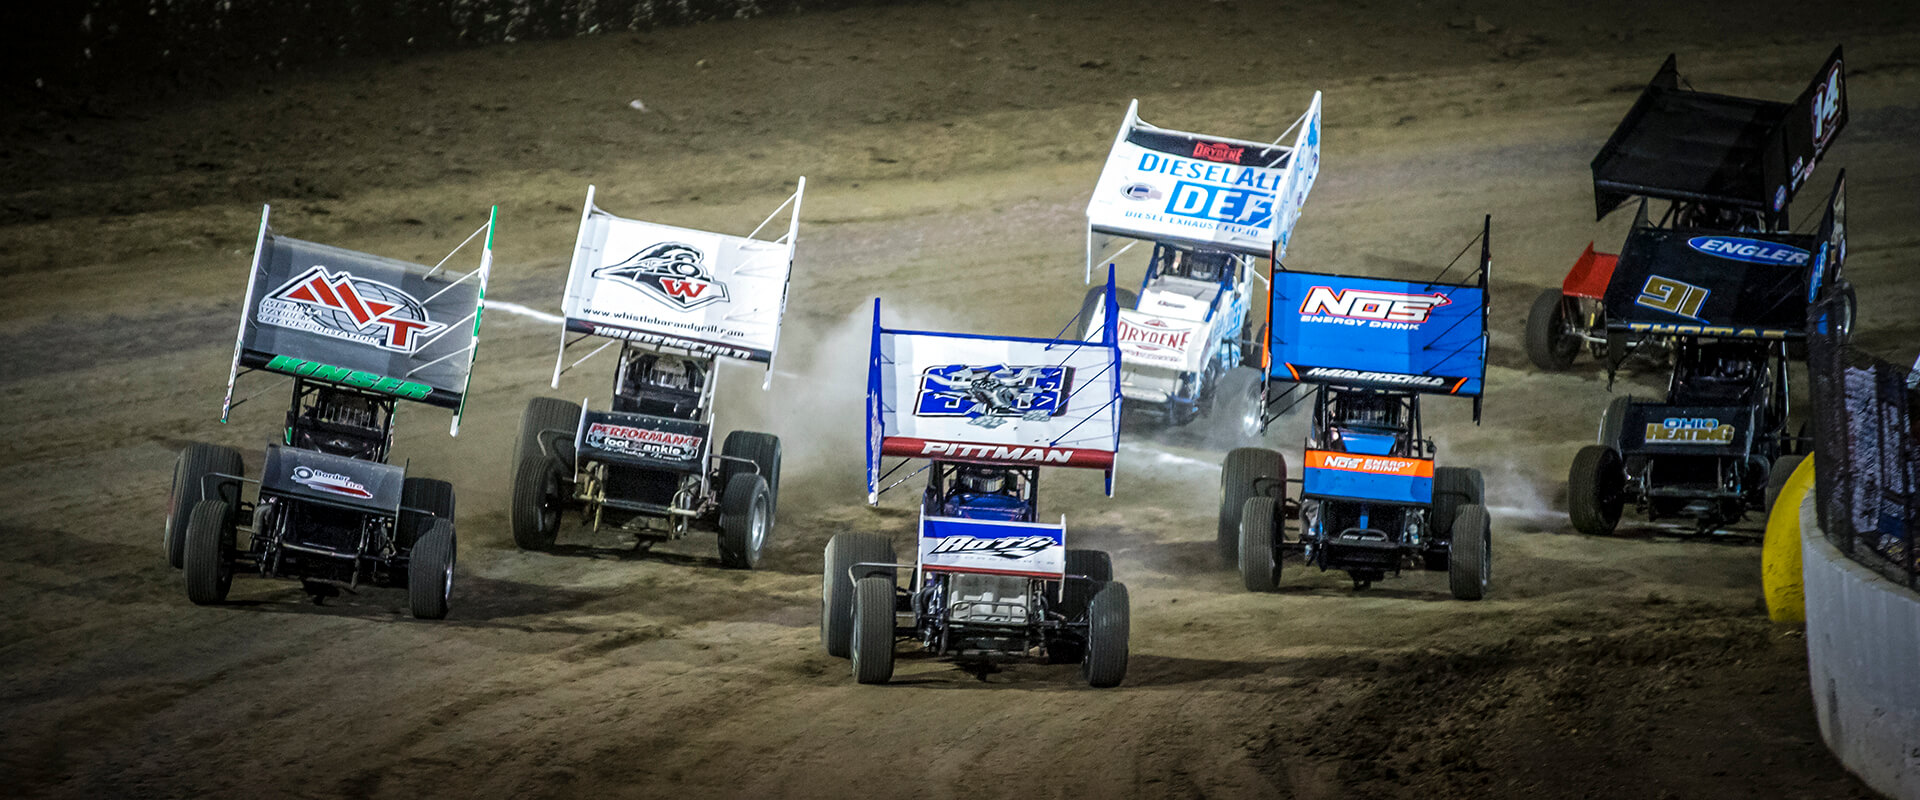 World of Outlaws Sprint Car Series | World of Outlaws